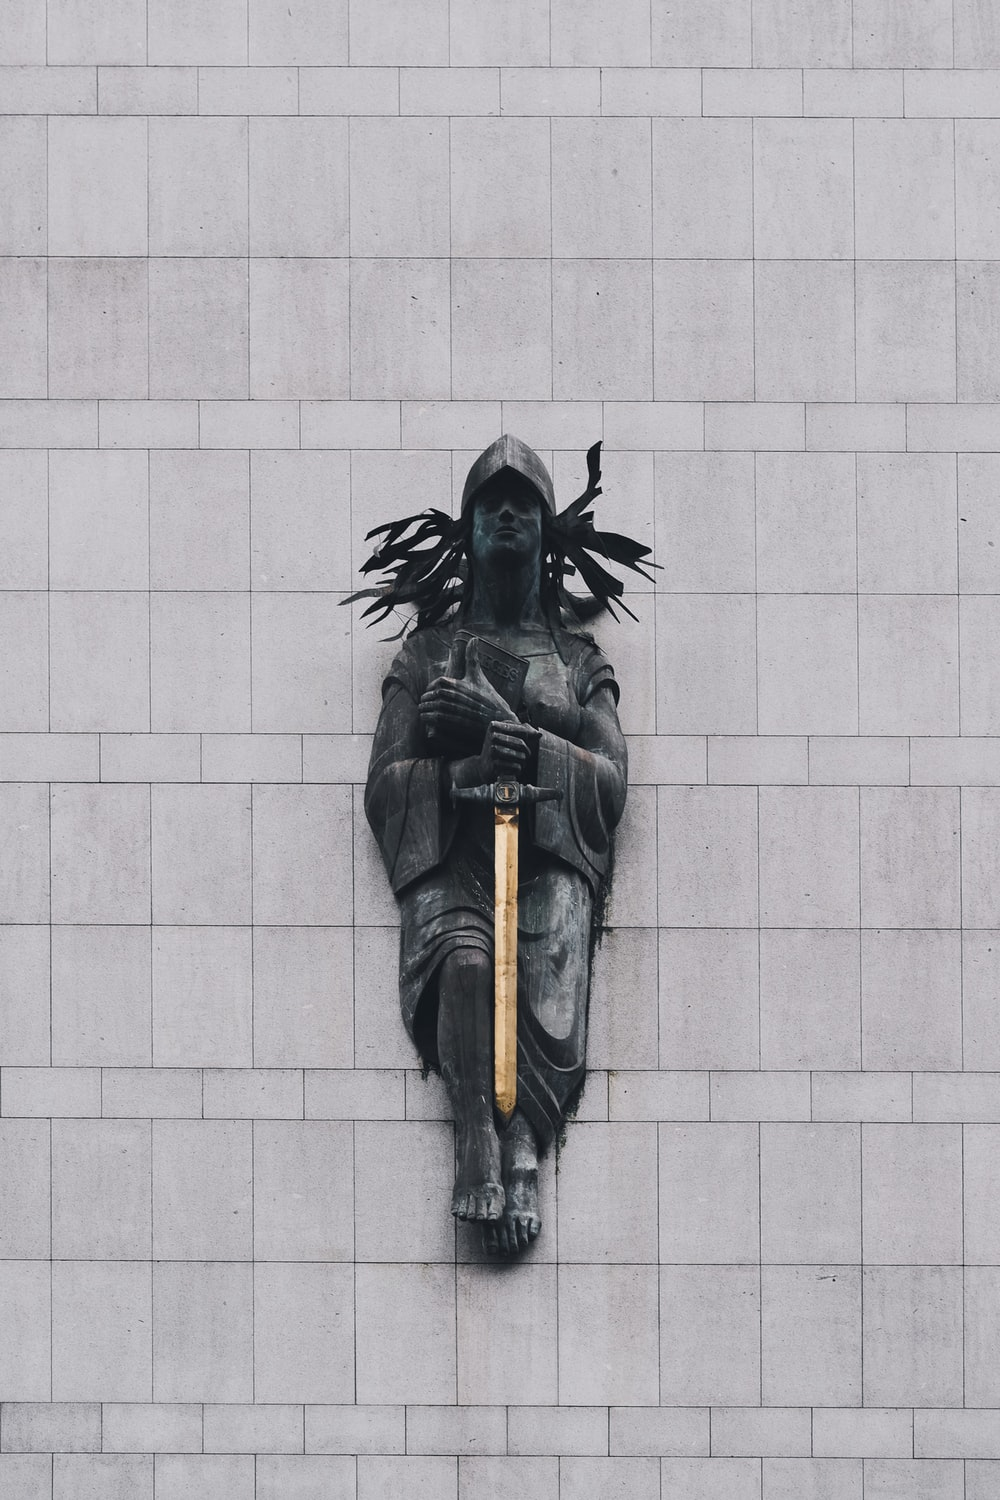 person with sword statue